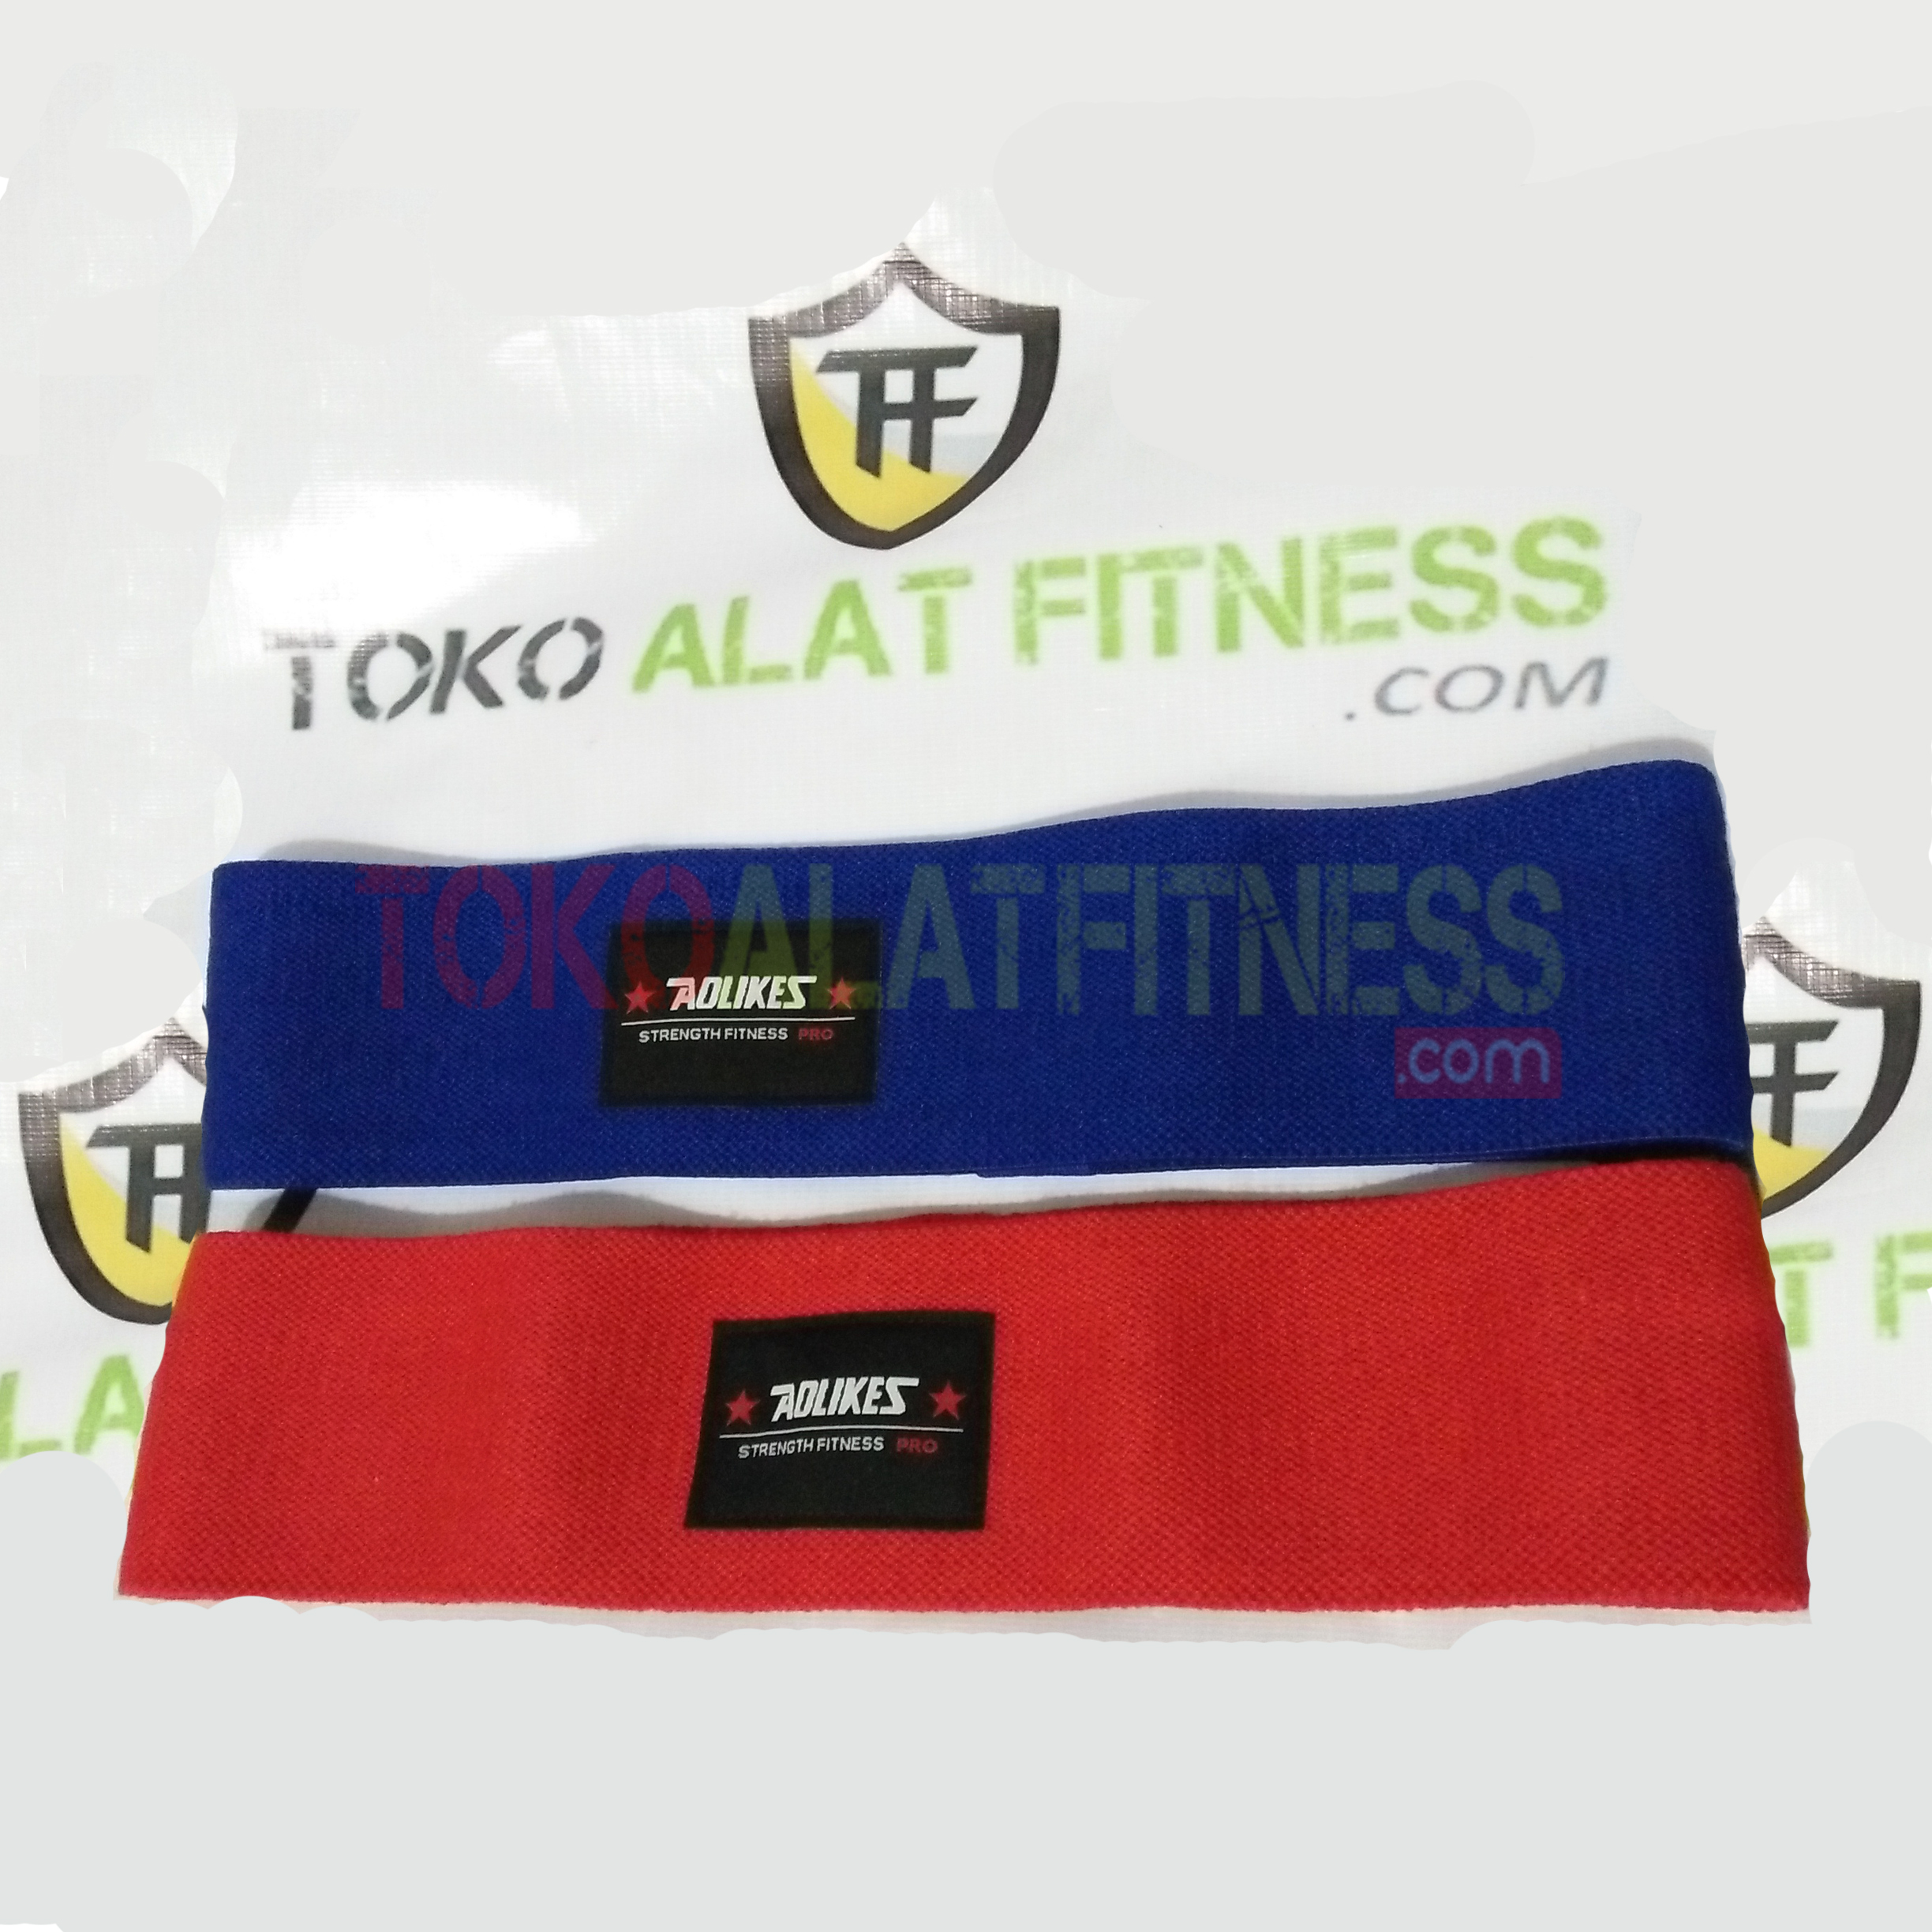 fa aolike blue red - Hips Resistance Band Red Aolikes - ASSP47